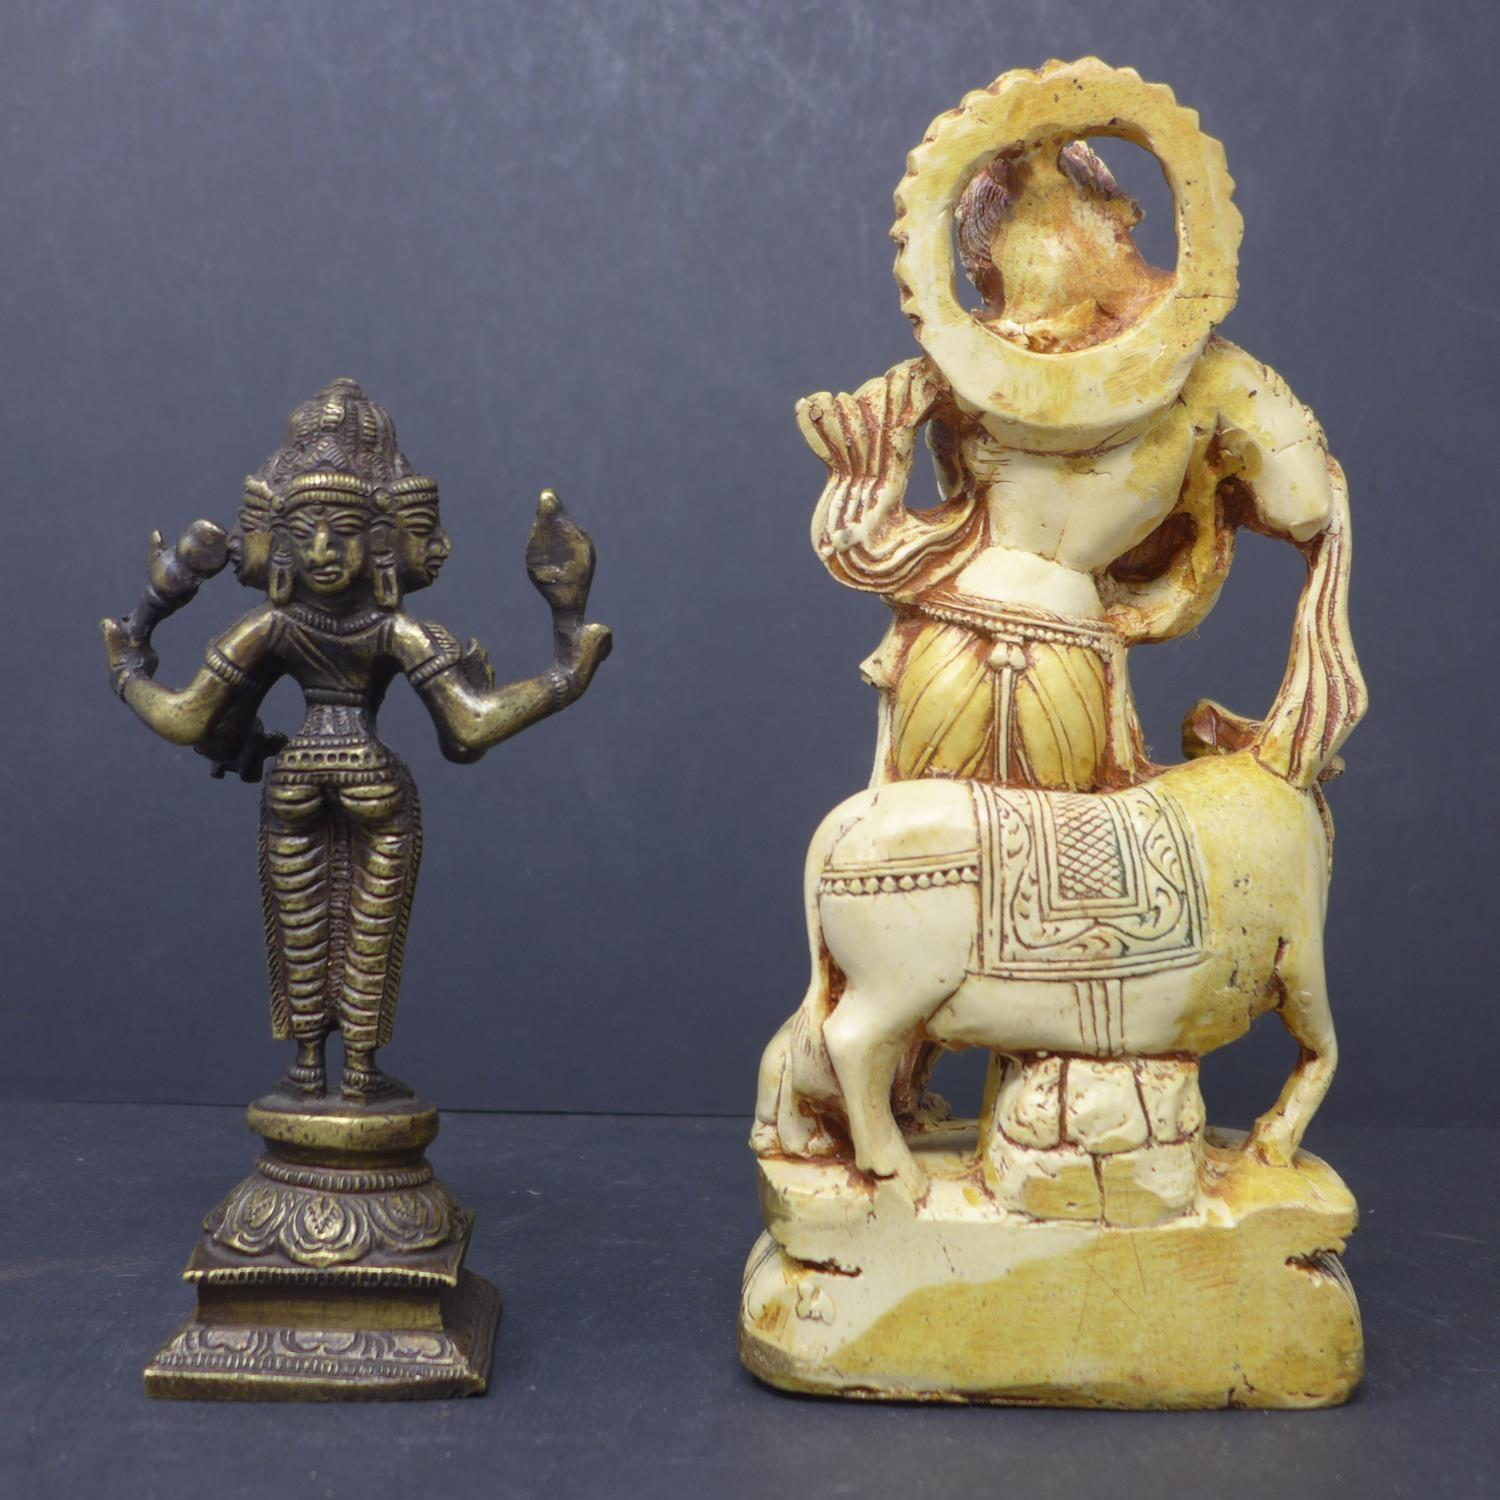 Lot 267 - A bronze statue of Hindu deity Brahma, H.16cm, together with a moulded statue of Krishna, H.21cm